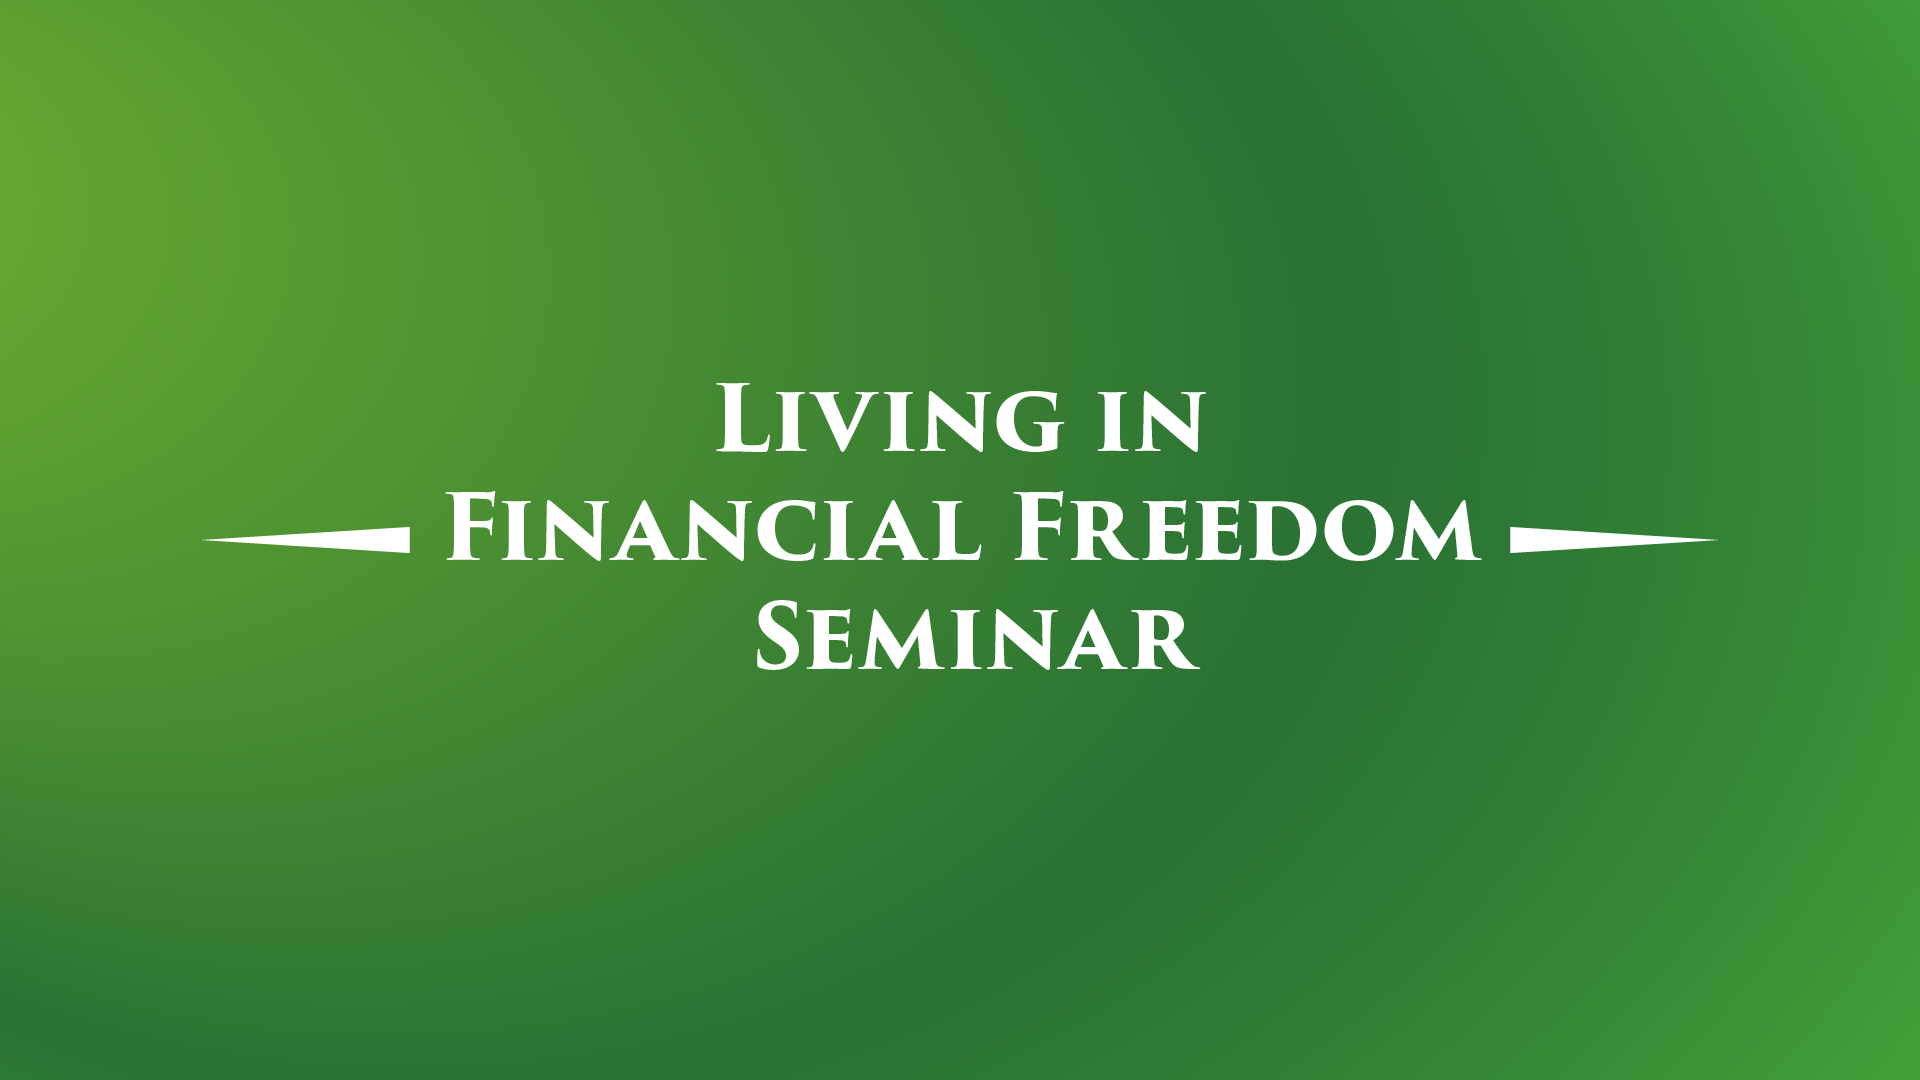 Financial freedom web graphic for pco 02